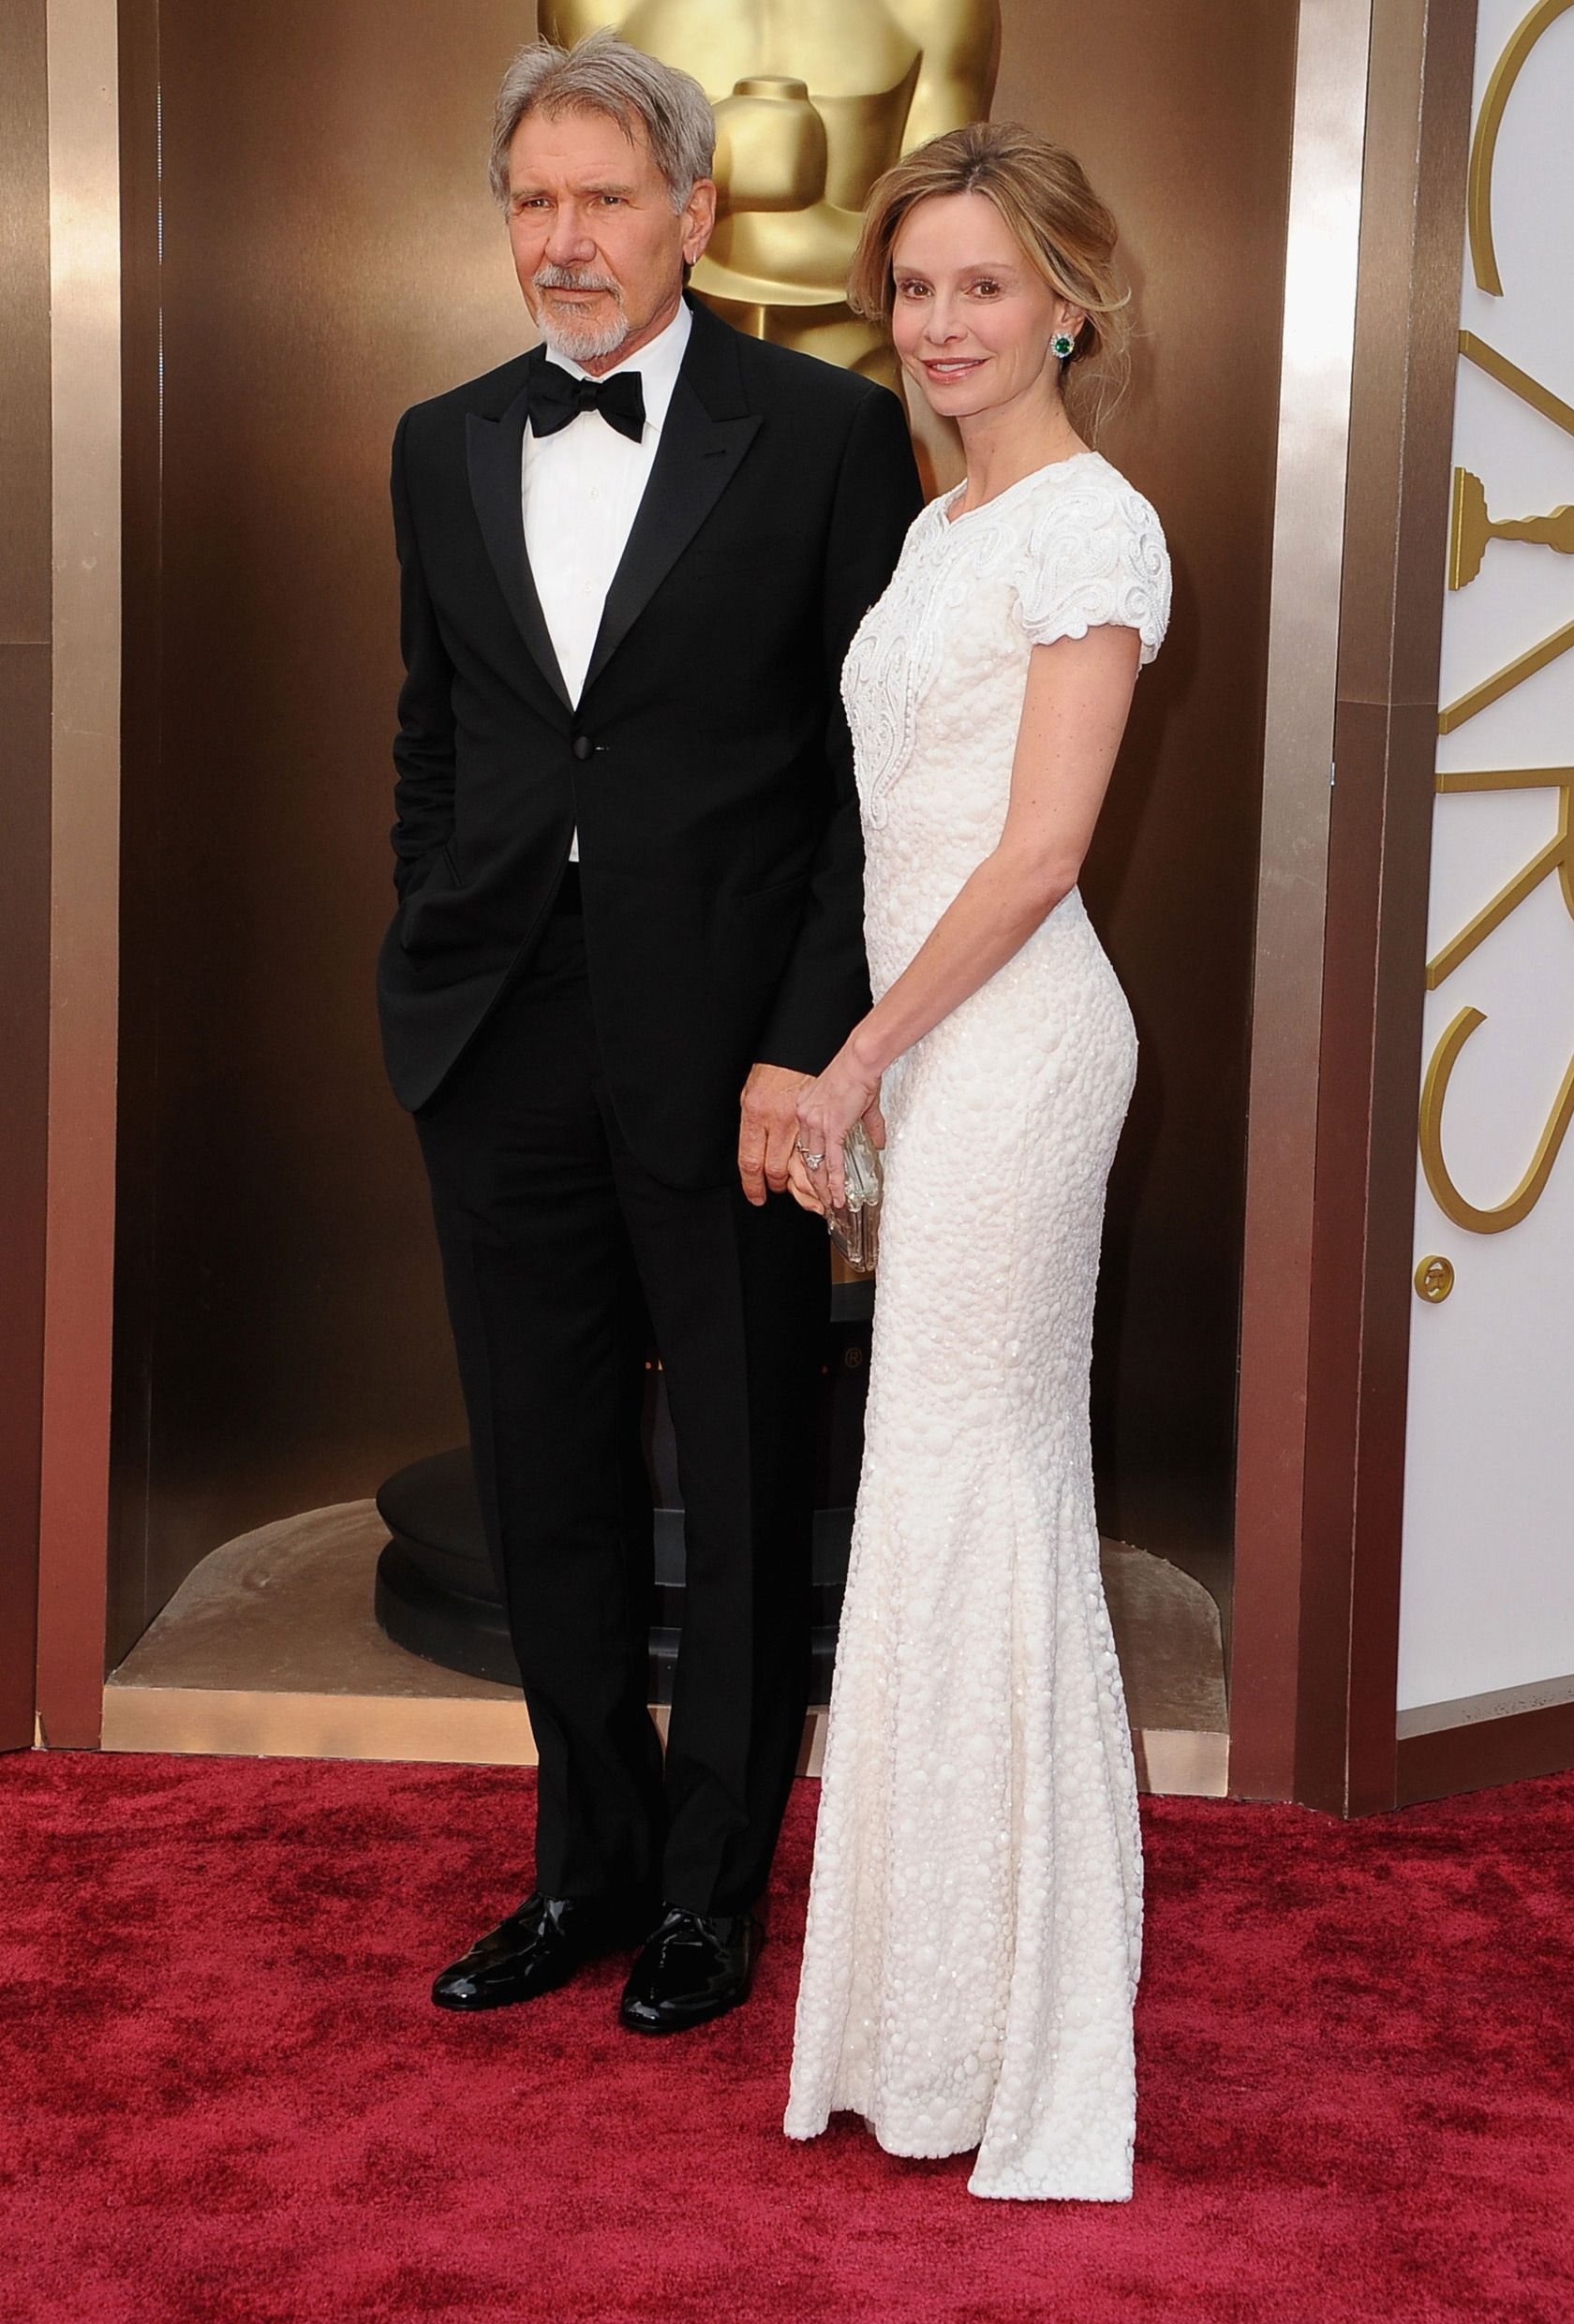 Harrison Ford And Calista Flockhart With Images Red Carpet